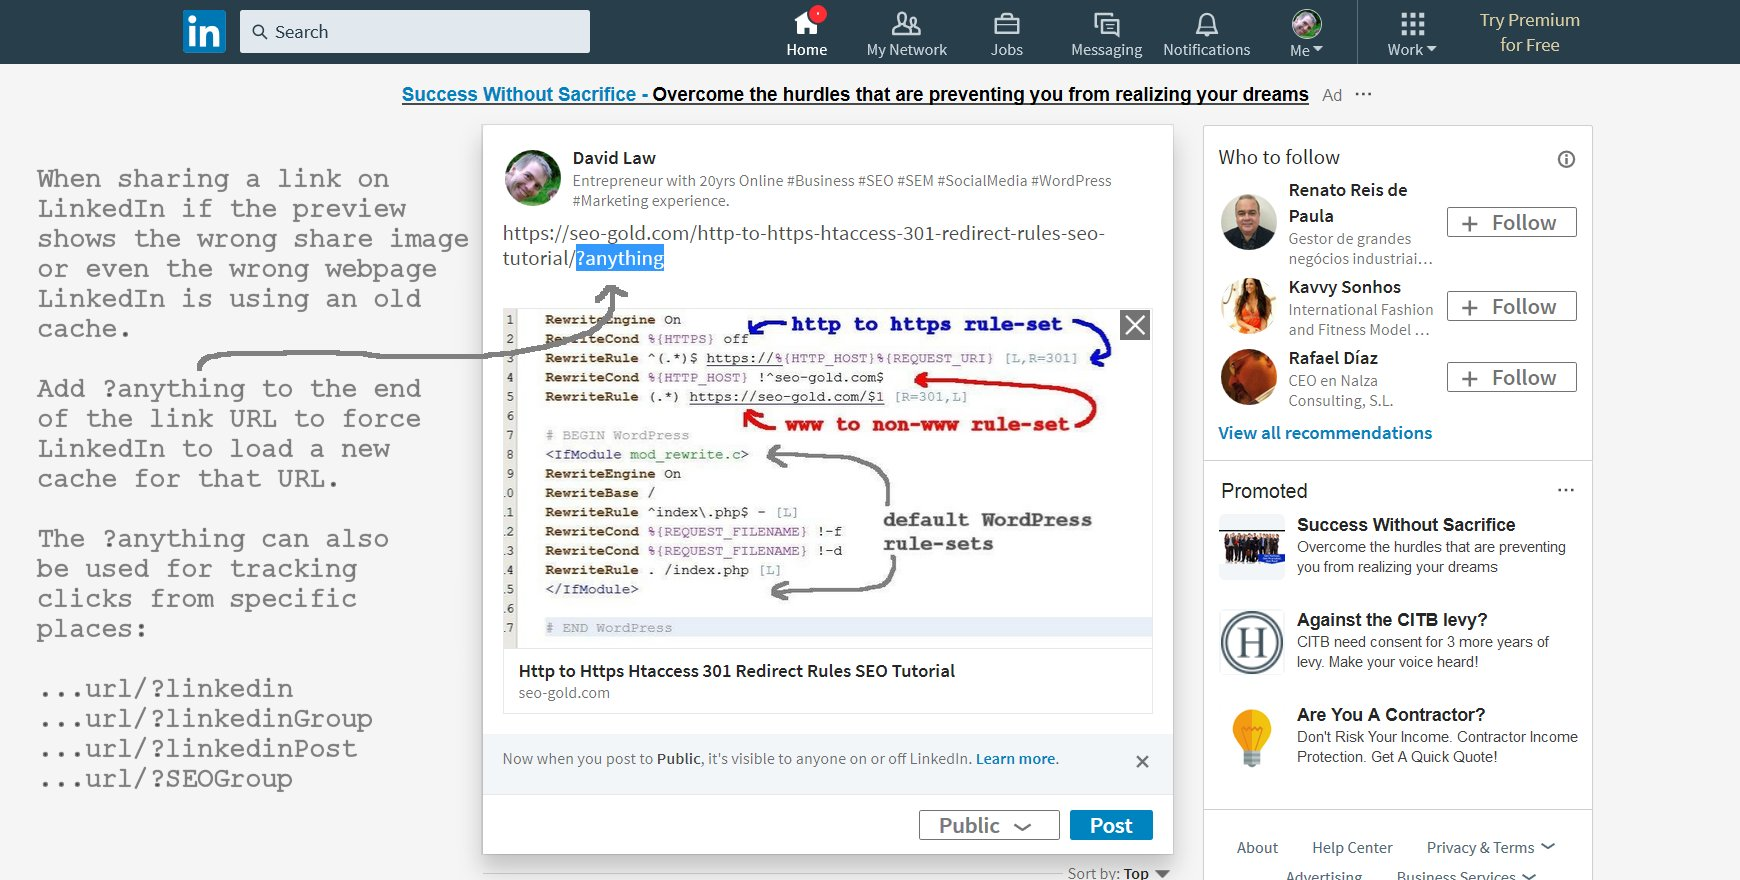 Clearing the LinkedIn Link Sharing Image Preview Cache